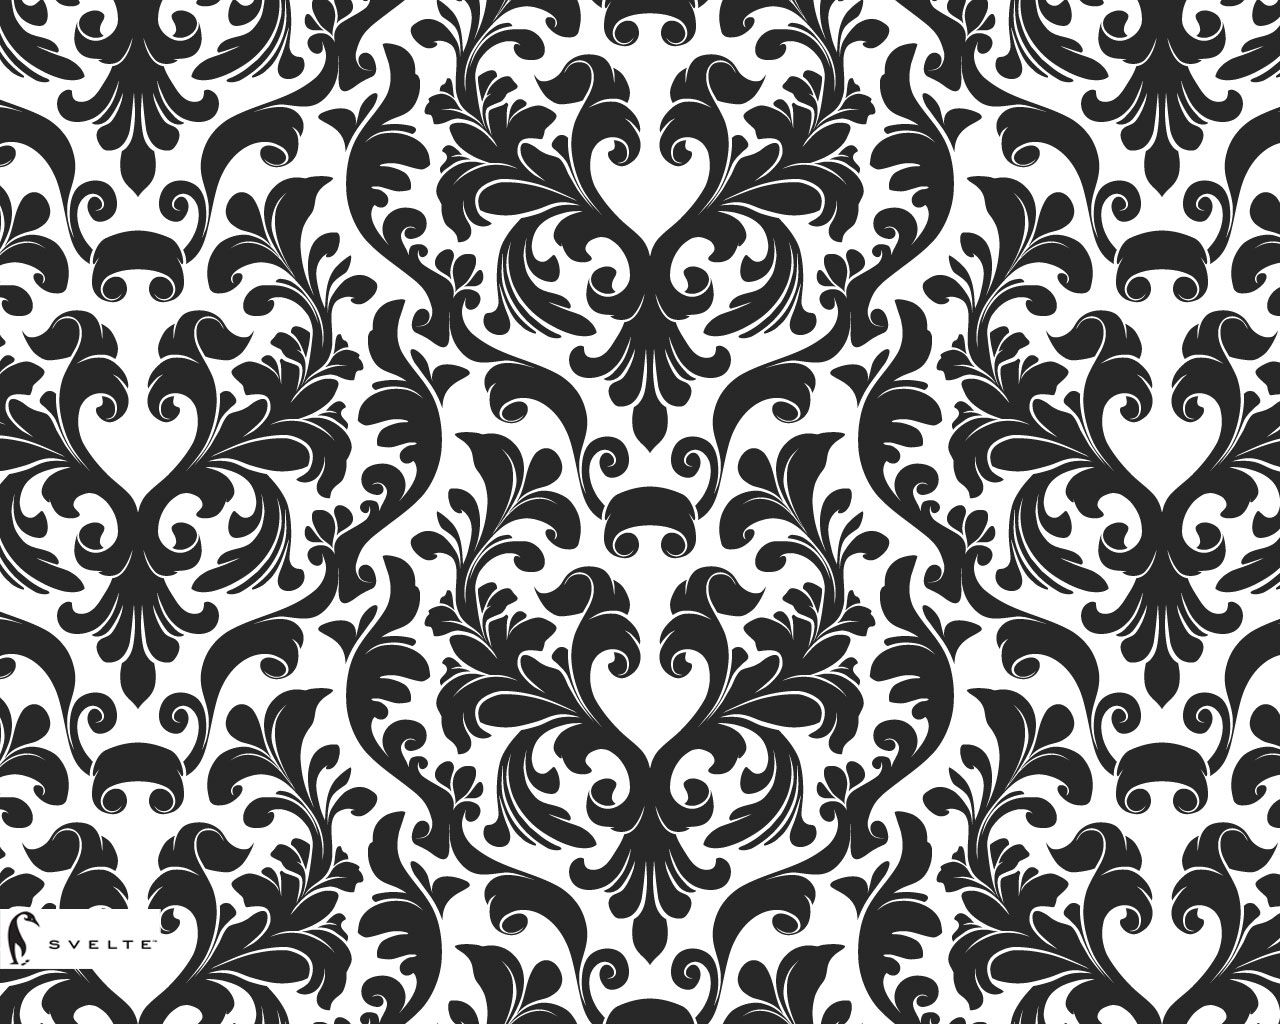 black white damask wallpaper  hd wallpapers  res x  - black white damask wallpaper  hd wallpapers  res x